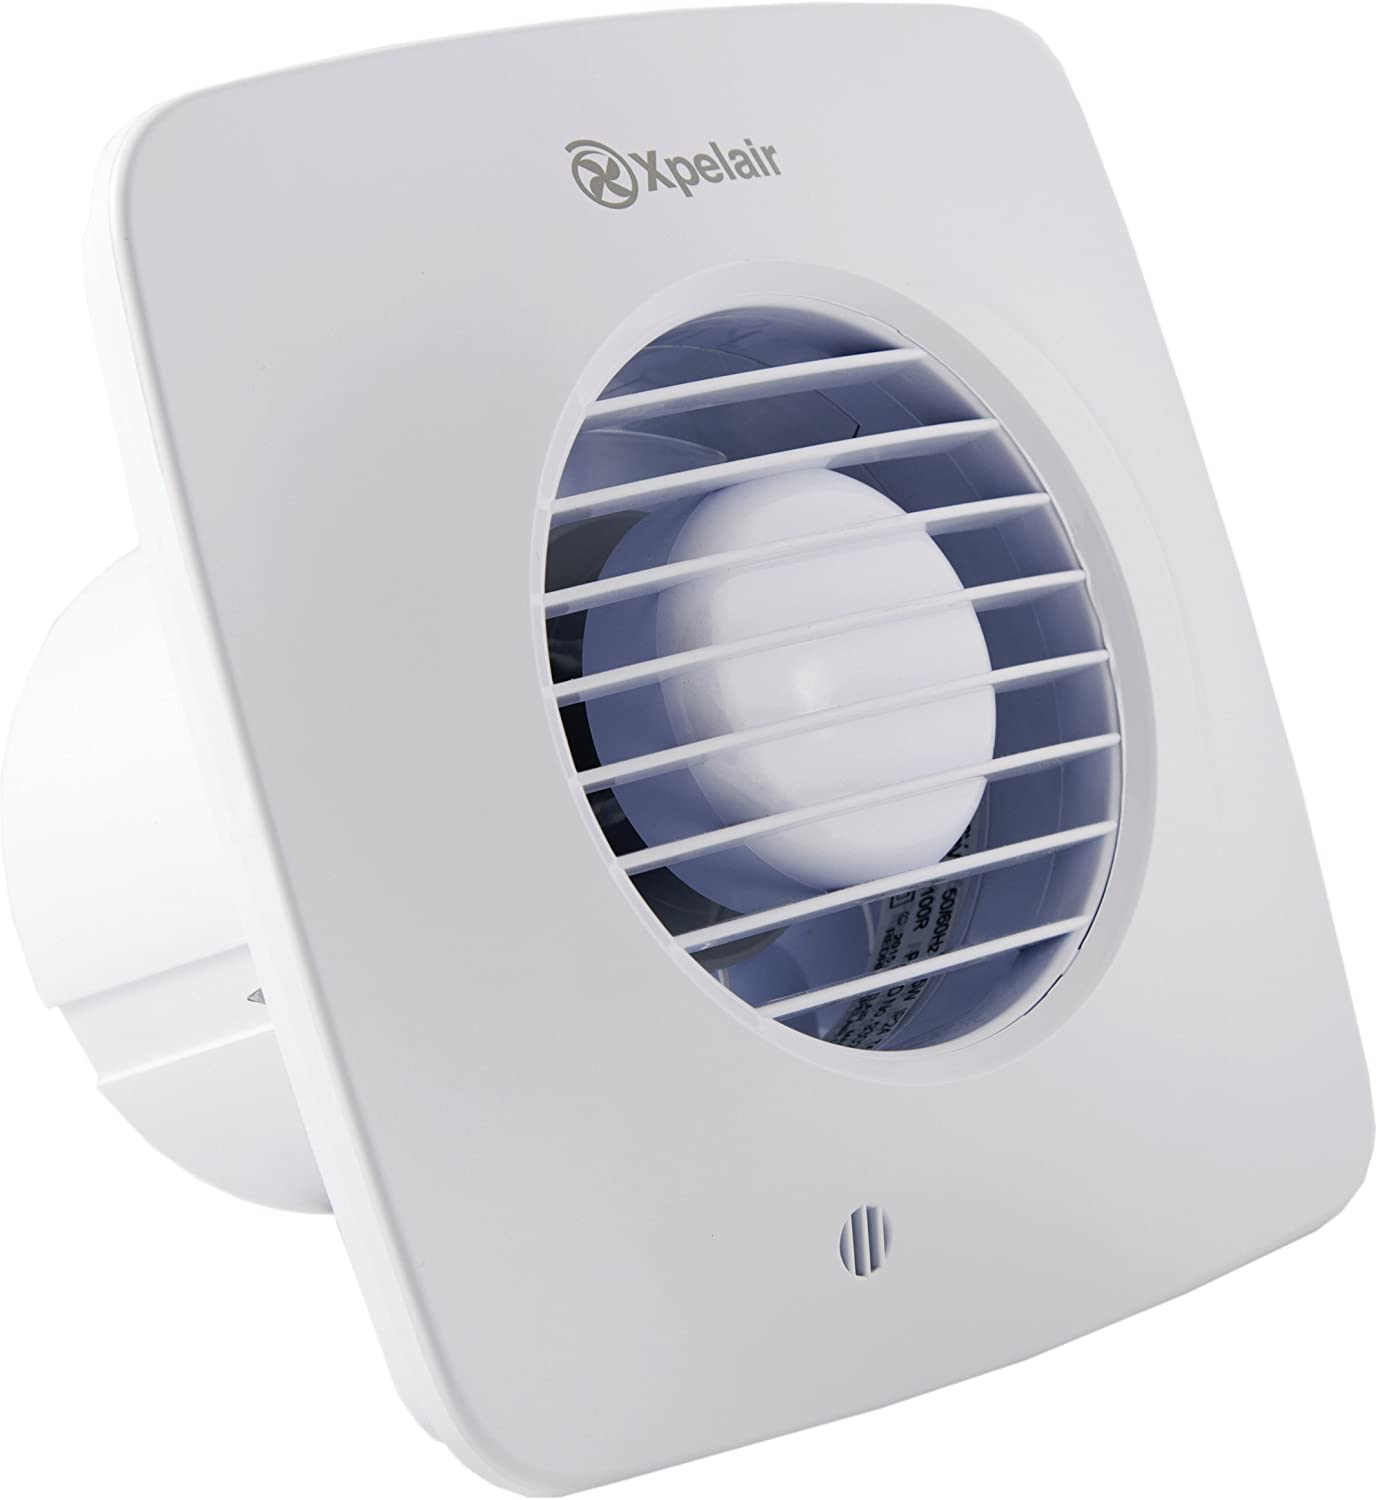 Simply Silent DX100 Bathroom Fan with Wall Kit-Humidistat Pullcord Square 100mm Cool White Xpelair DX100HPTS 4 inch